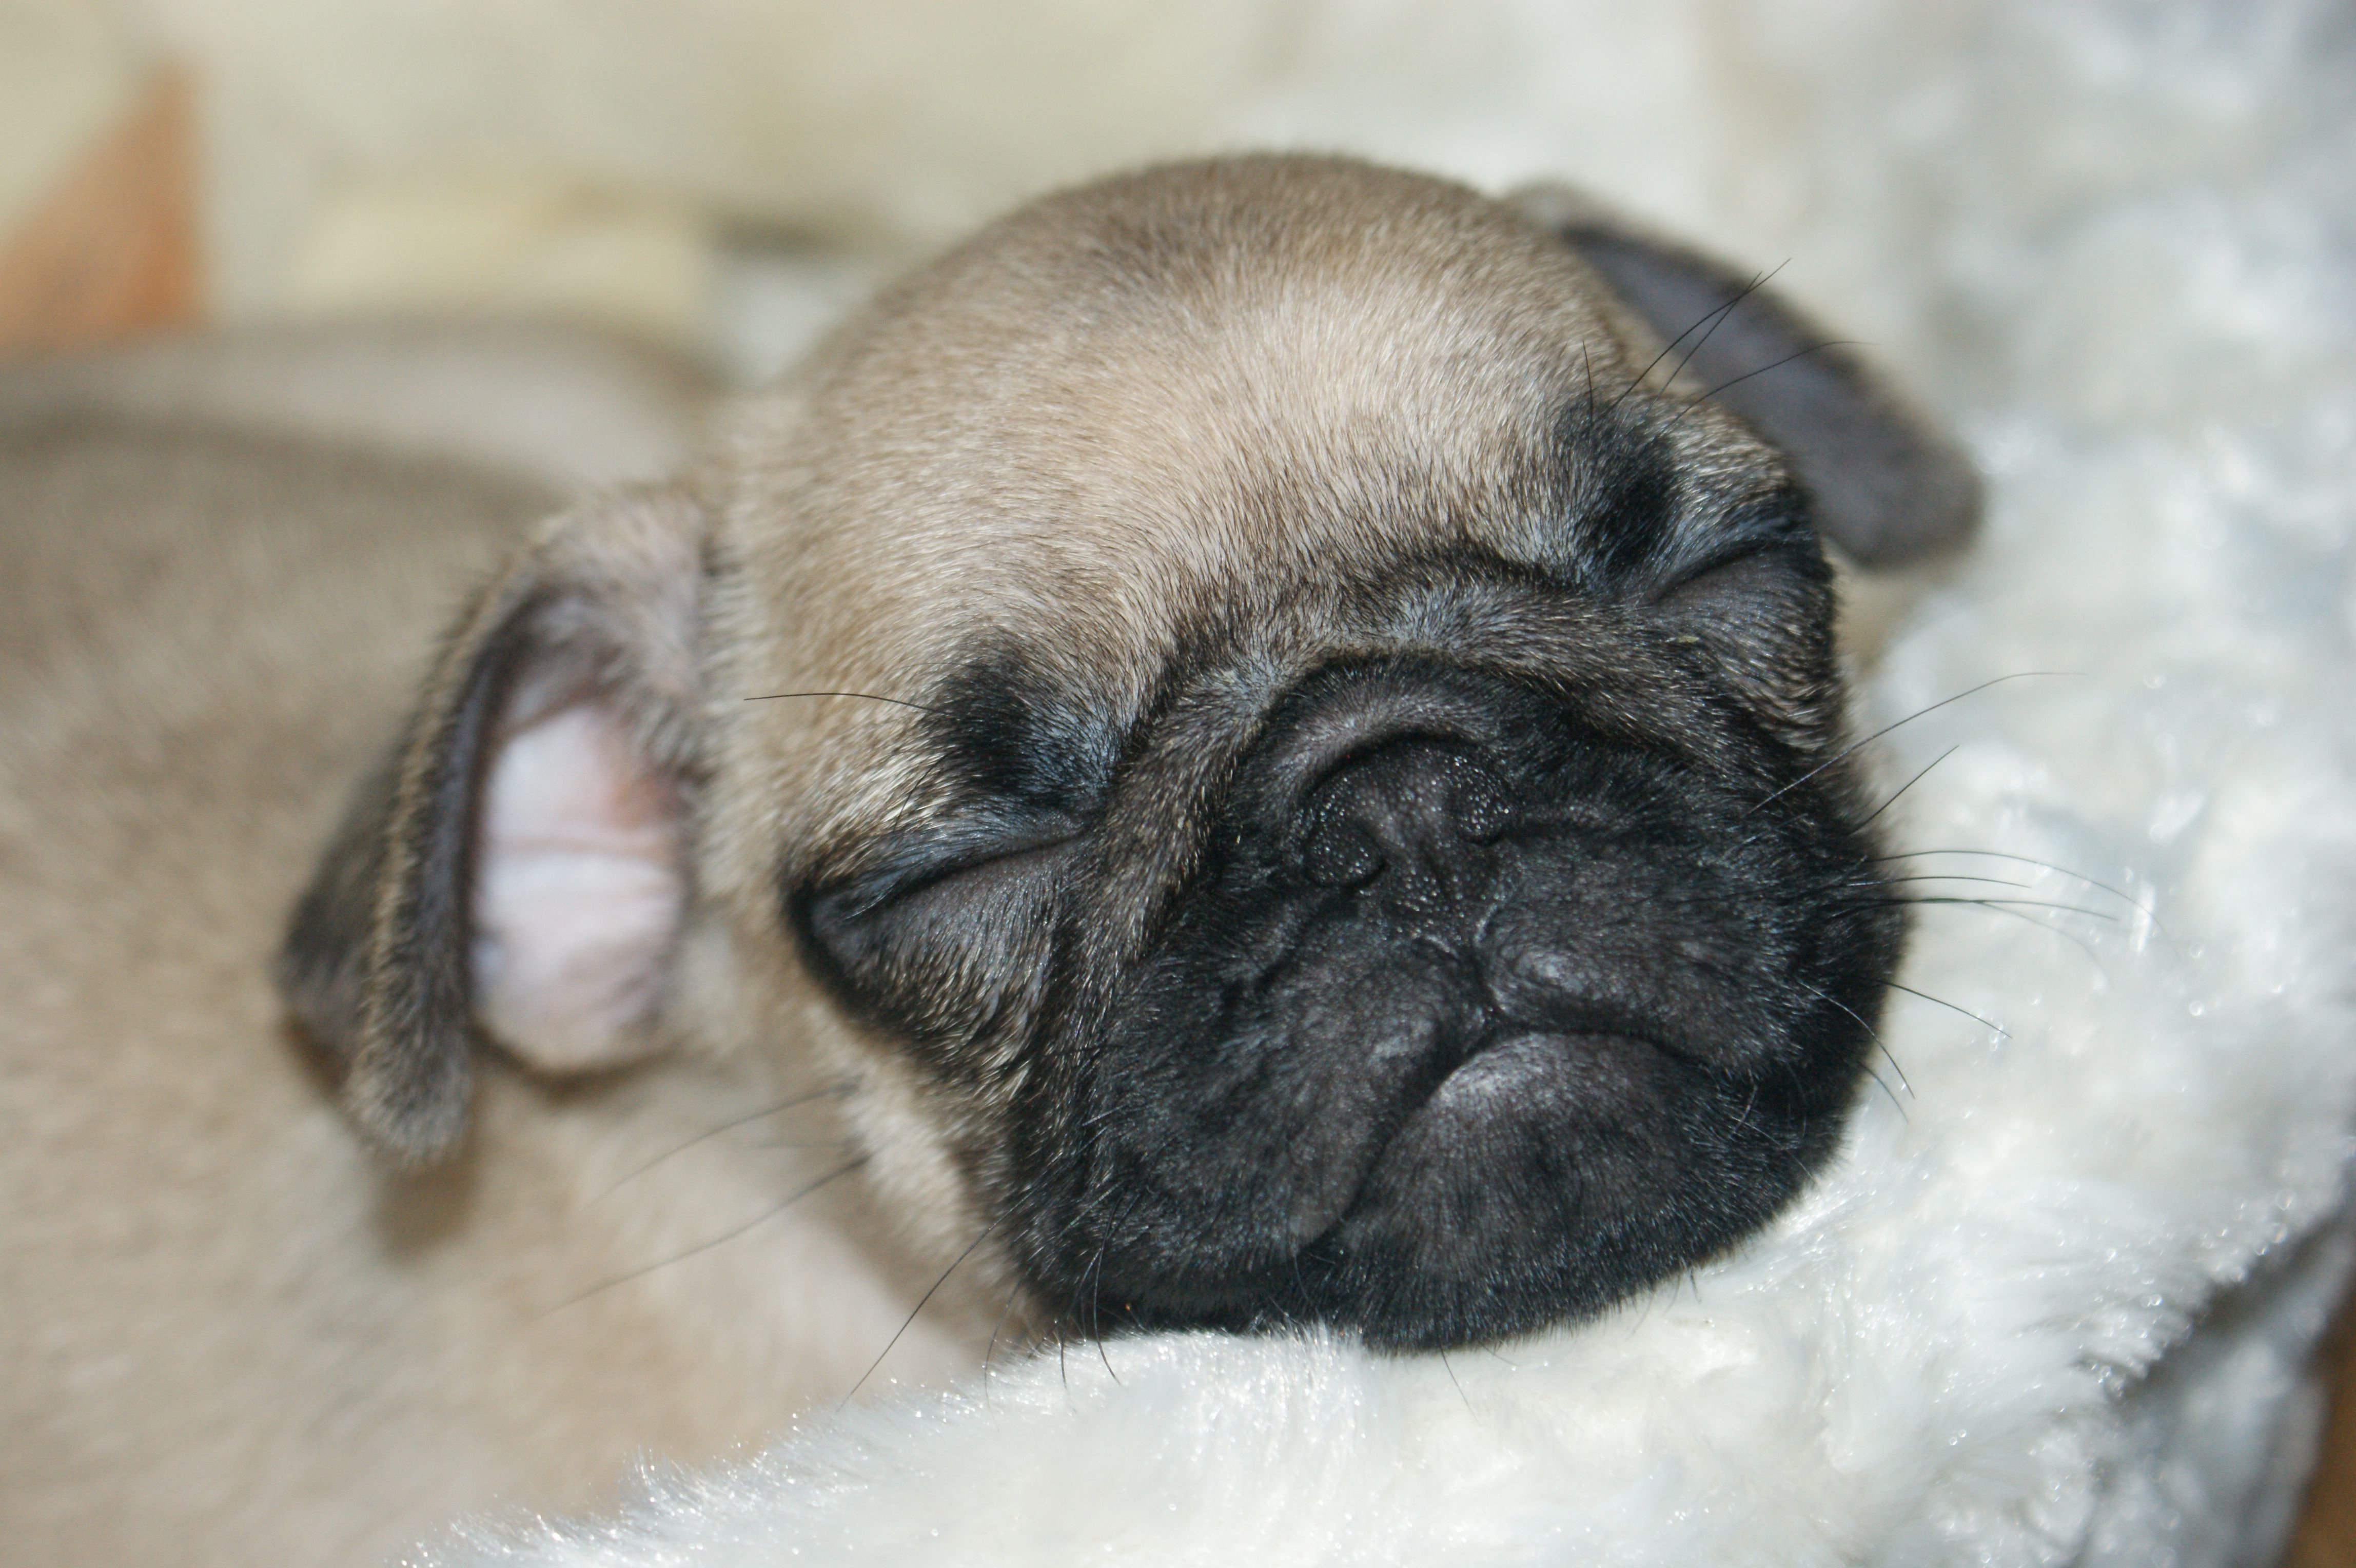 Pugs My Beautiful Baby Girl Pug Puppy 2 Months Old Pug Puppy